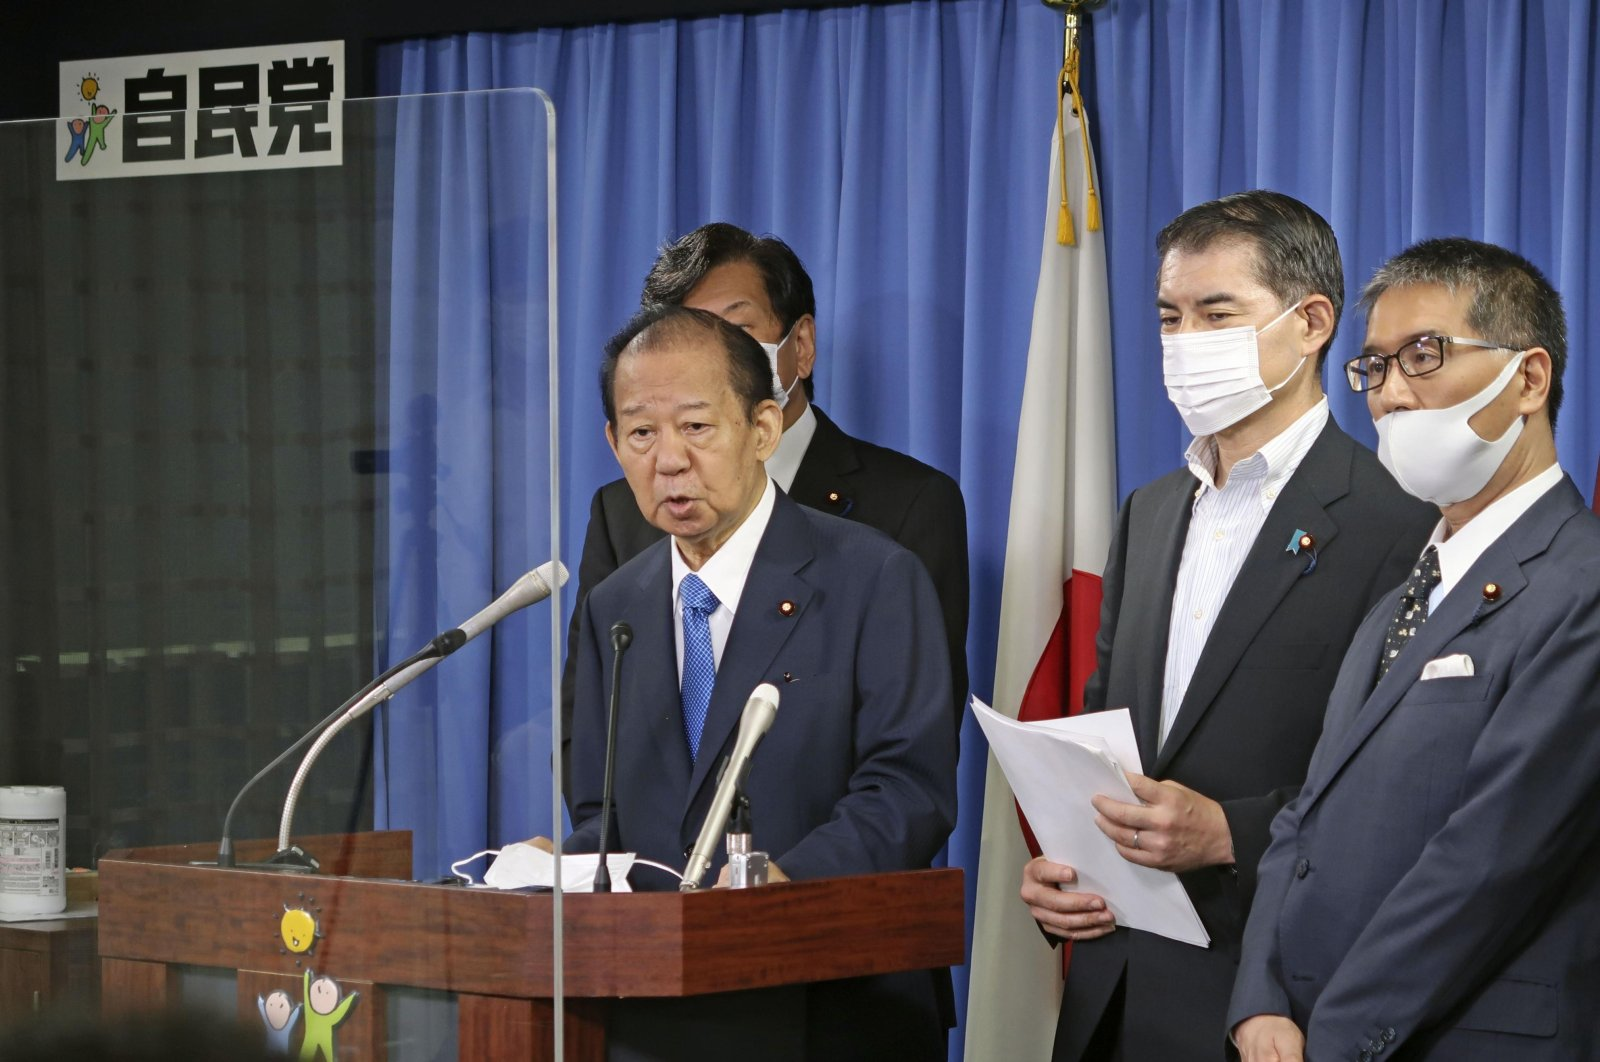 Japan's Liberal Democratic Party Secretary-General Toshihiro Nikai speaks at a news conference on election day for the Tokyo metropolitan assembly, in Tokyo, Japan, July 4, 2021. (AP Photo)